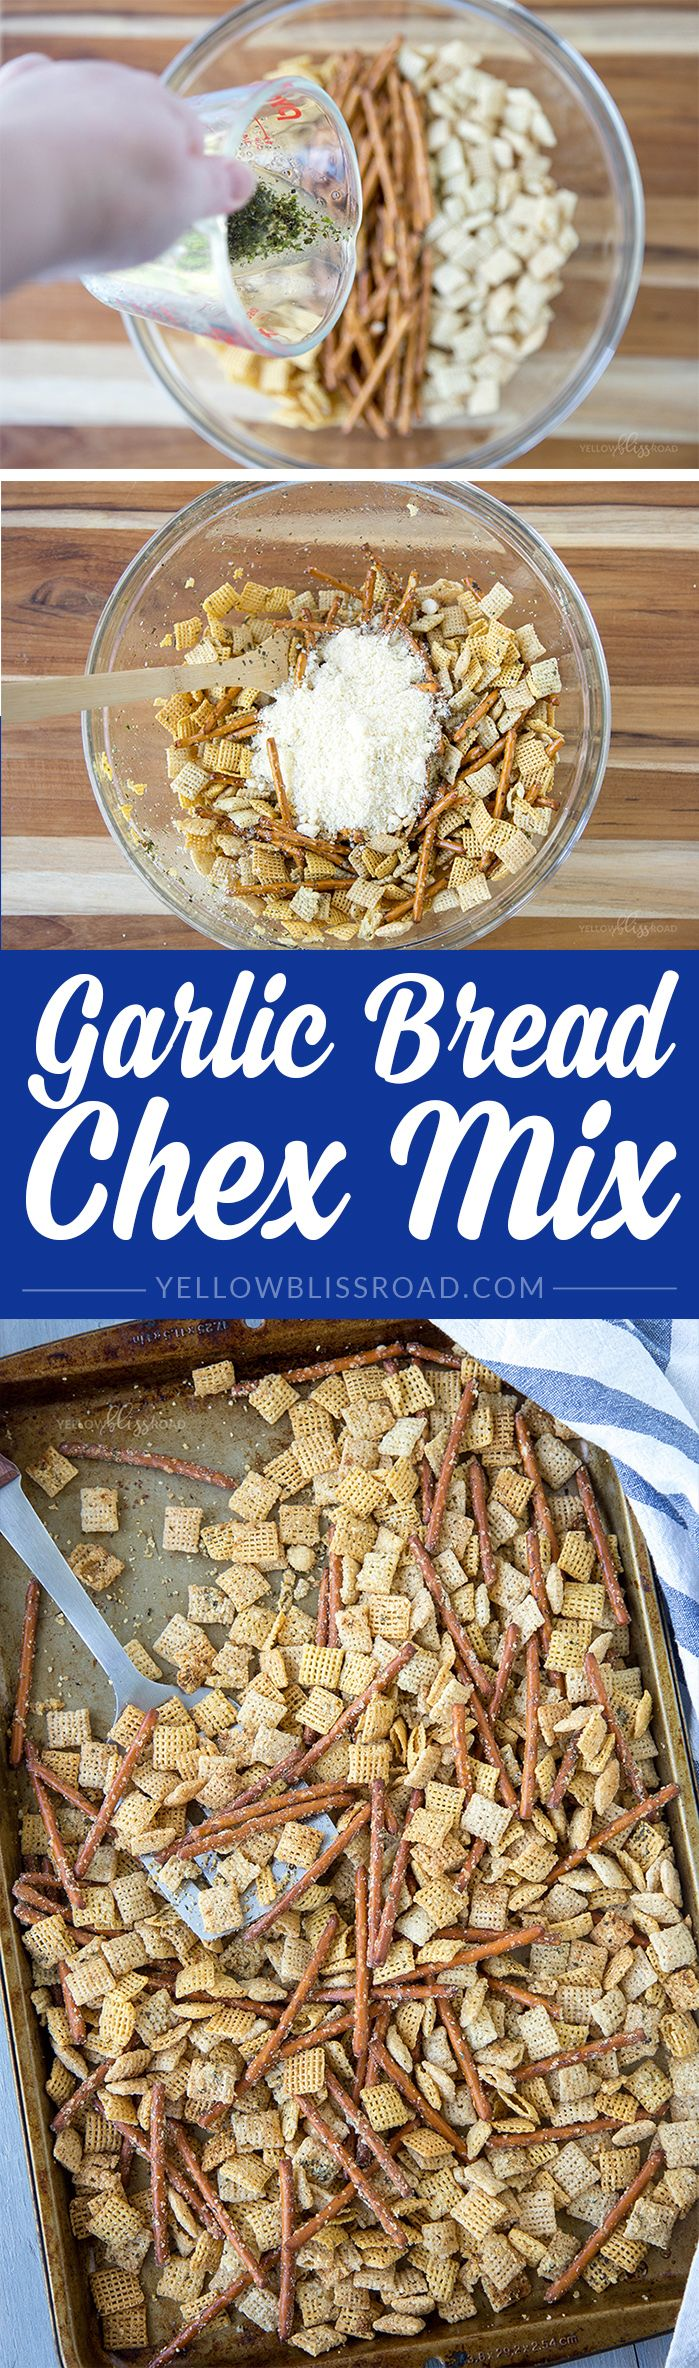 Garlic Bread Chex Mix - A delicious snack made with Chex cereal, Garlic, Basil and Parmesan Cheese. #besnacksational #ad